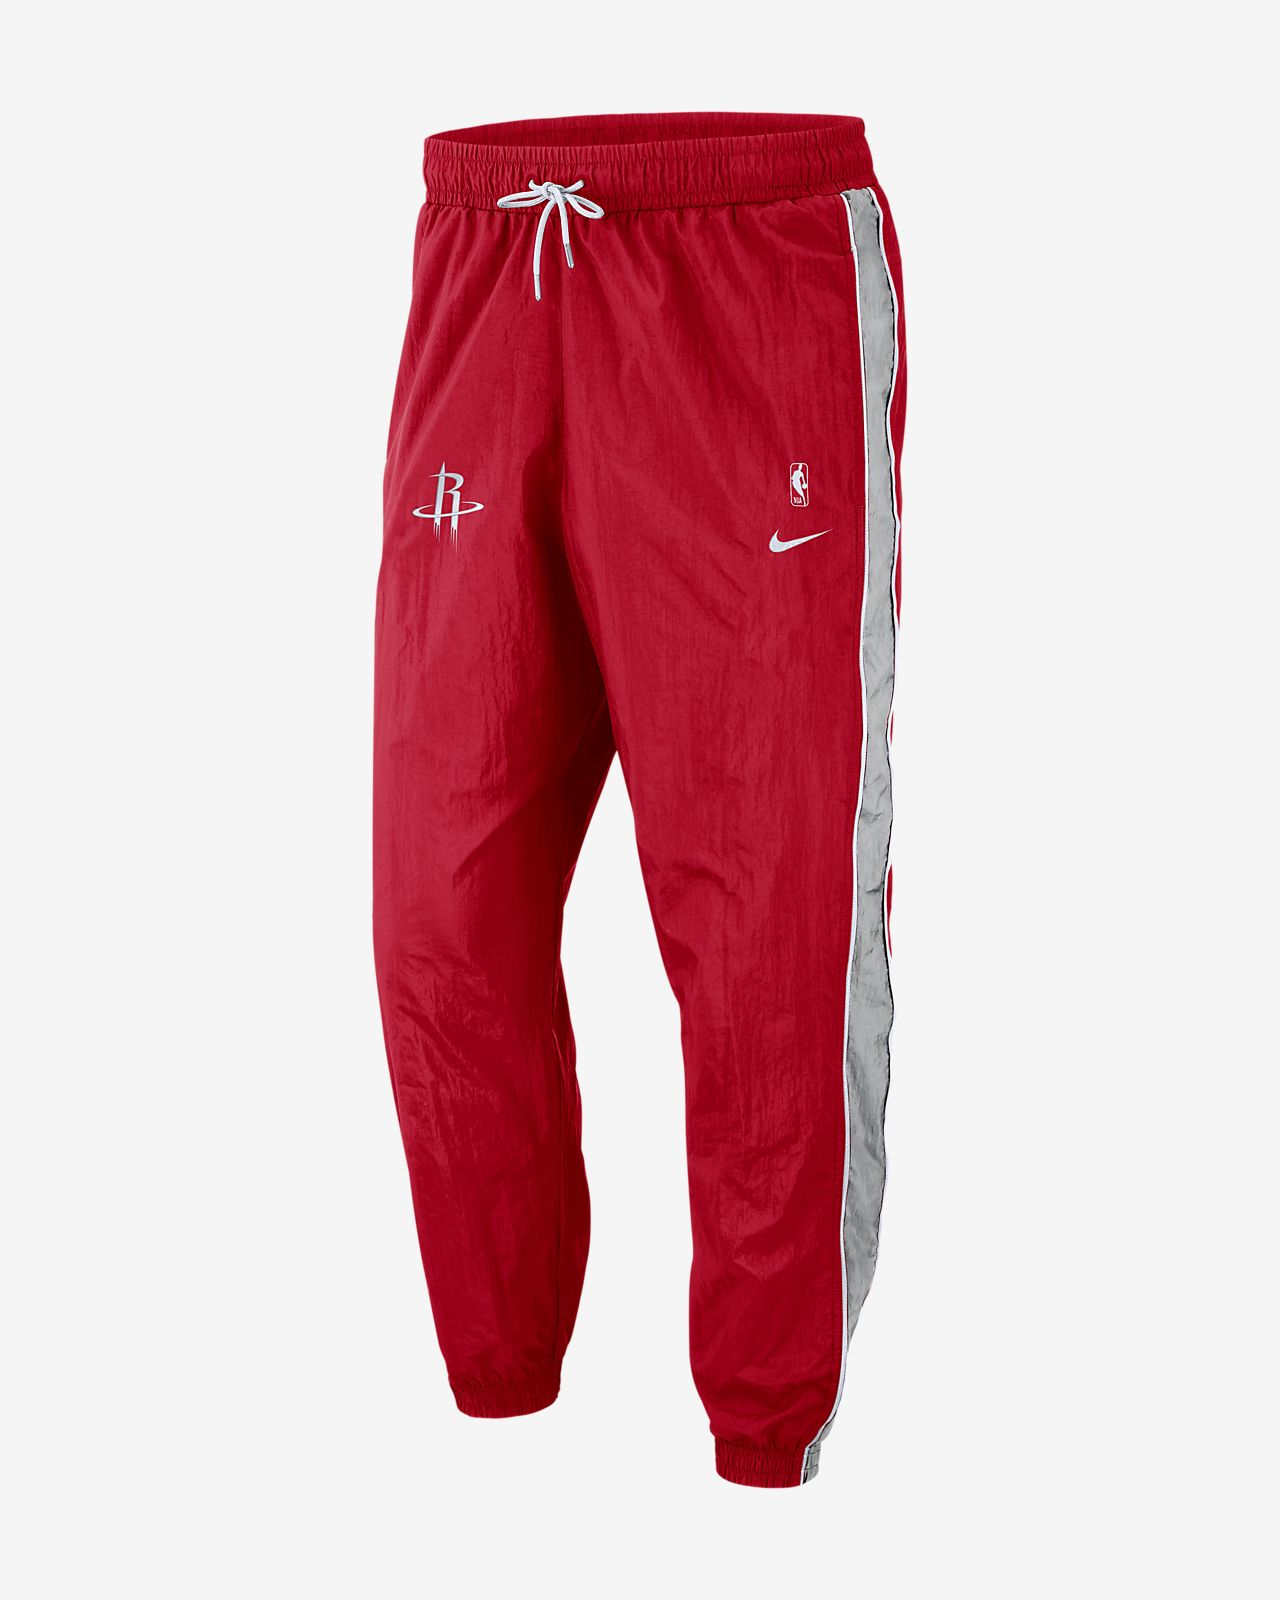 581a700c68 Houston Rockets Nike Men's NBA Tracksuit Pants